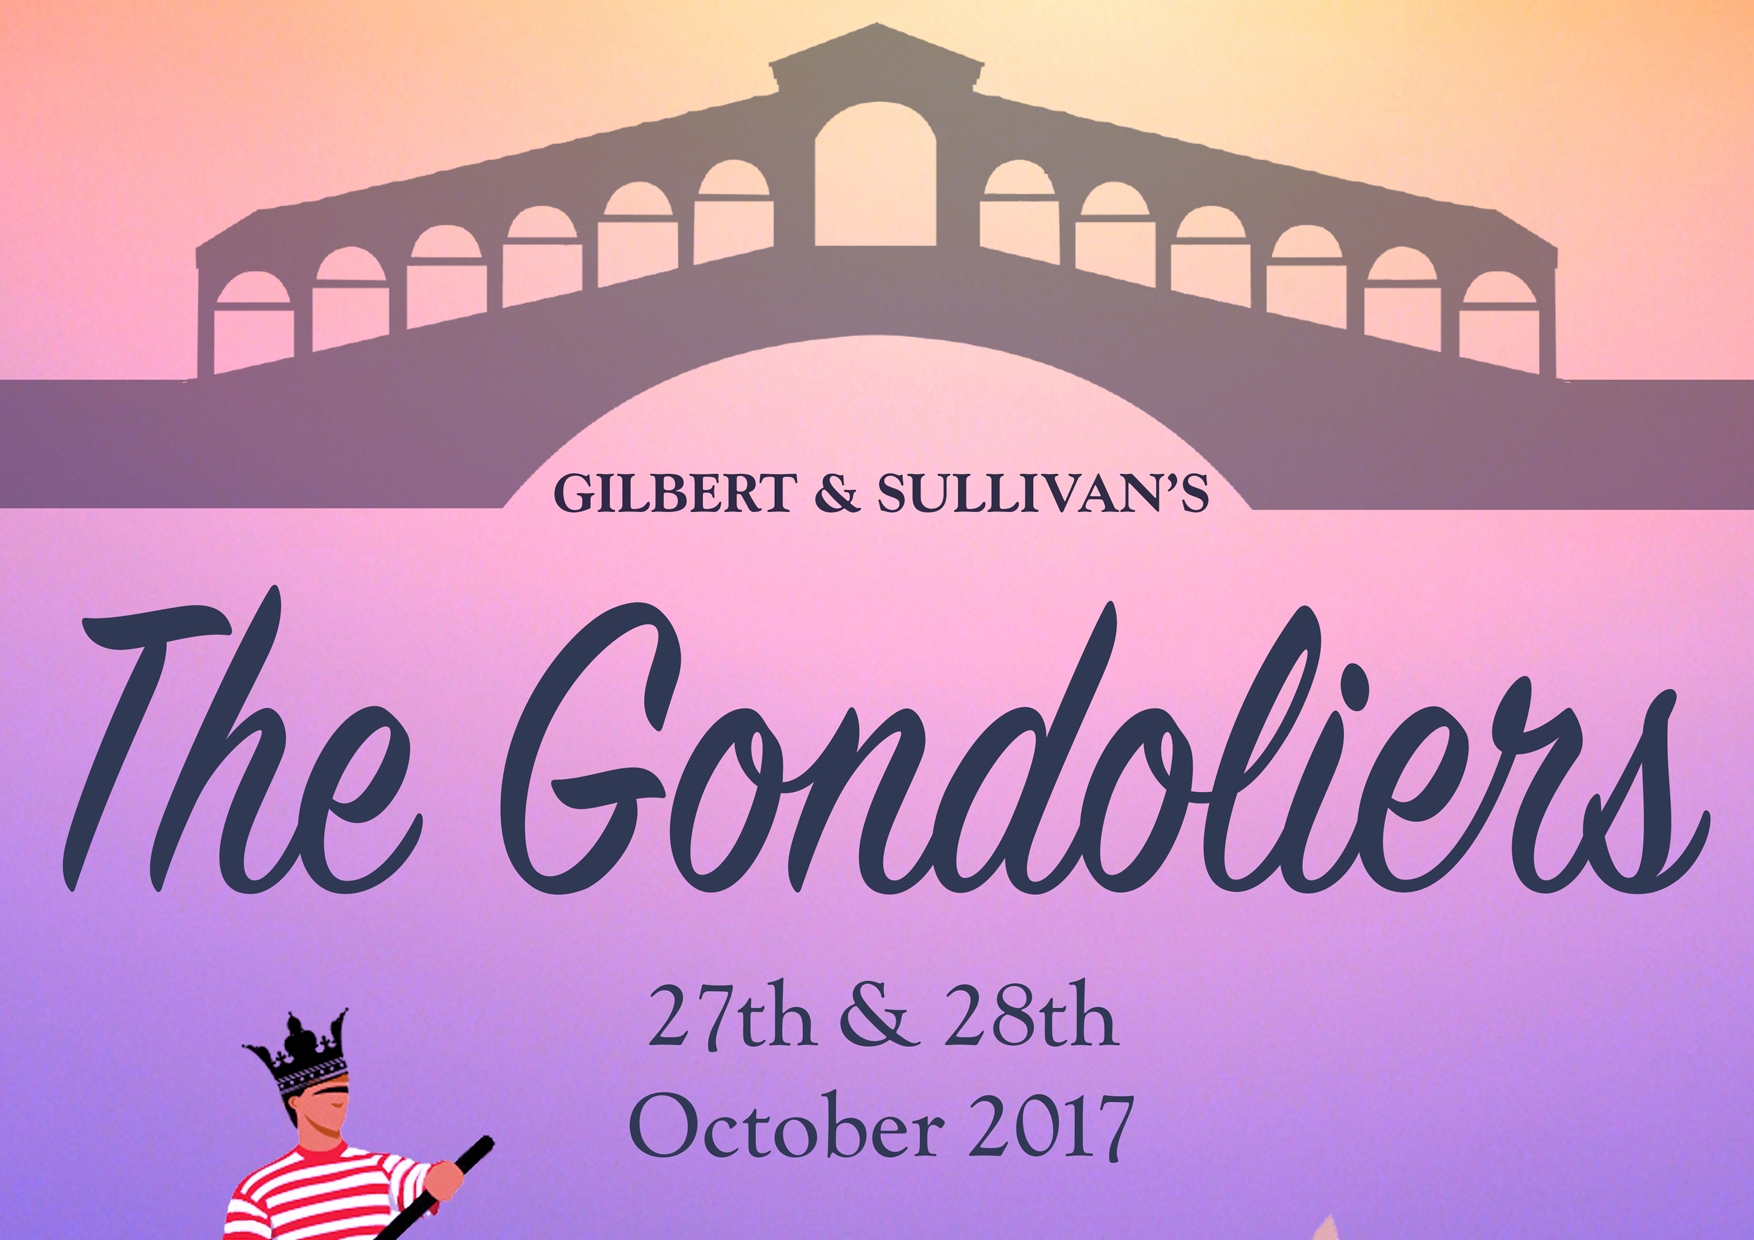 North West Opera present Gilbert & Sullivan's The Gondoliers